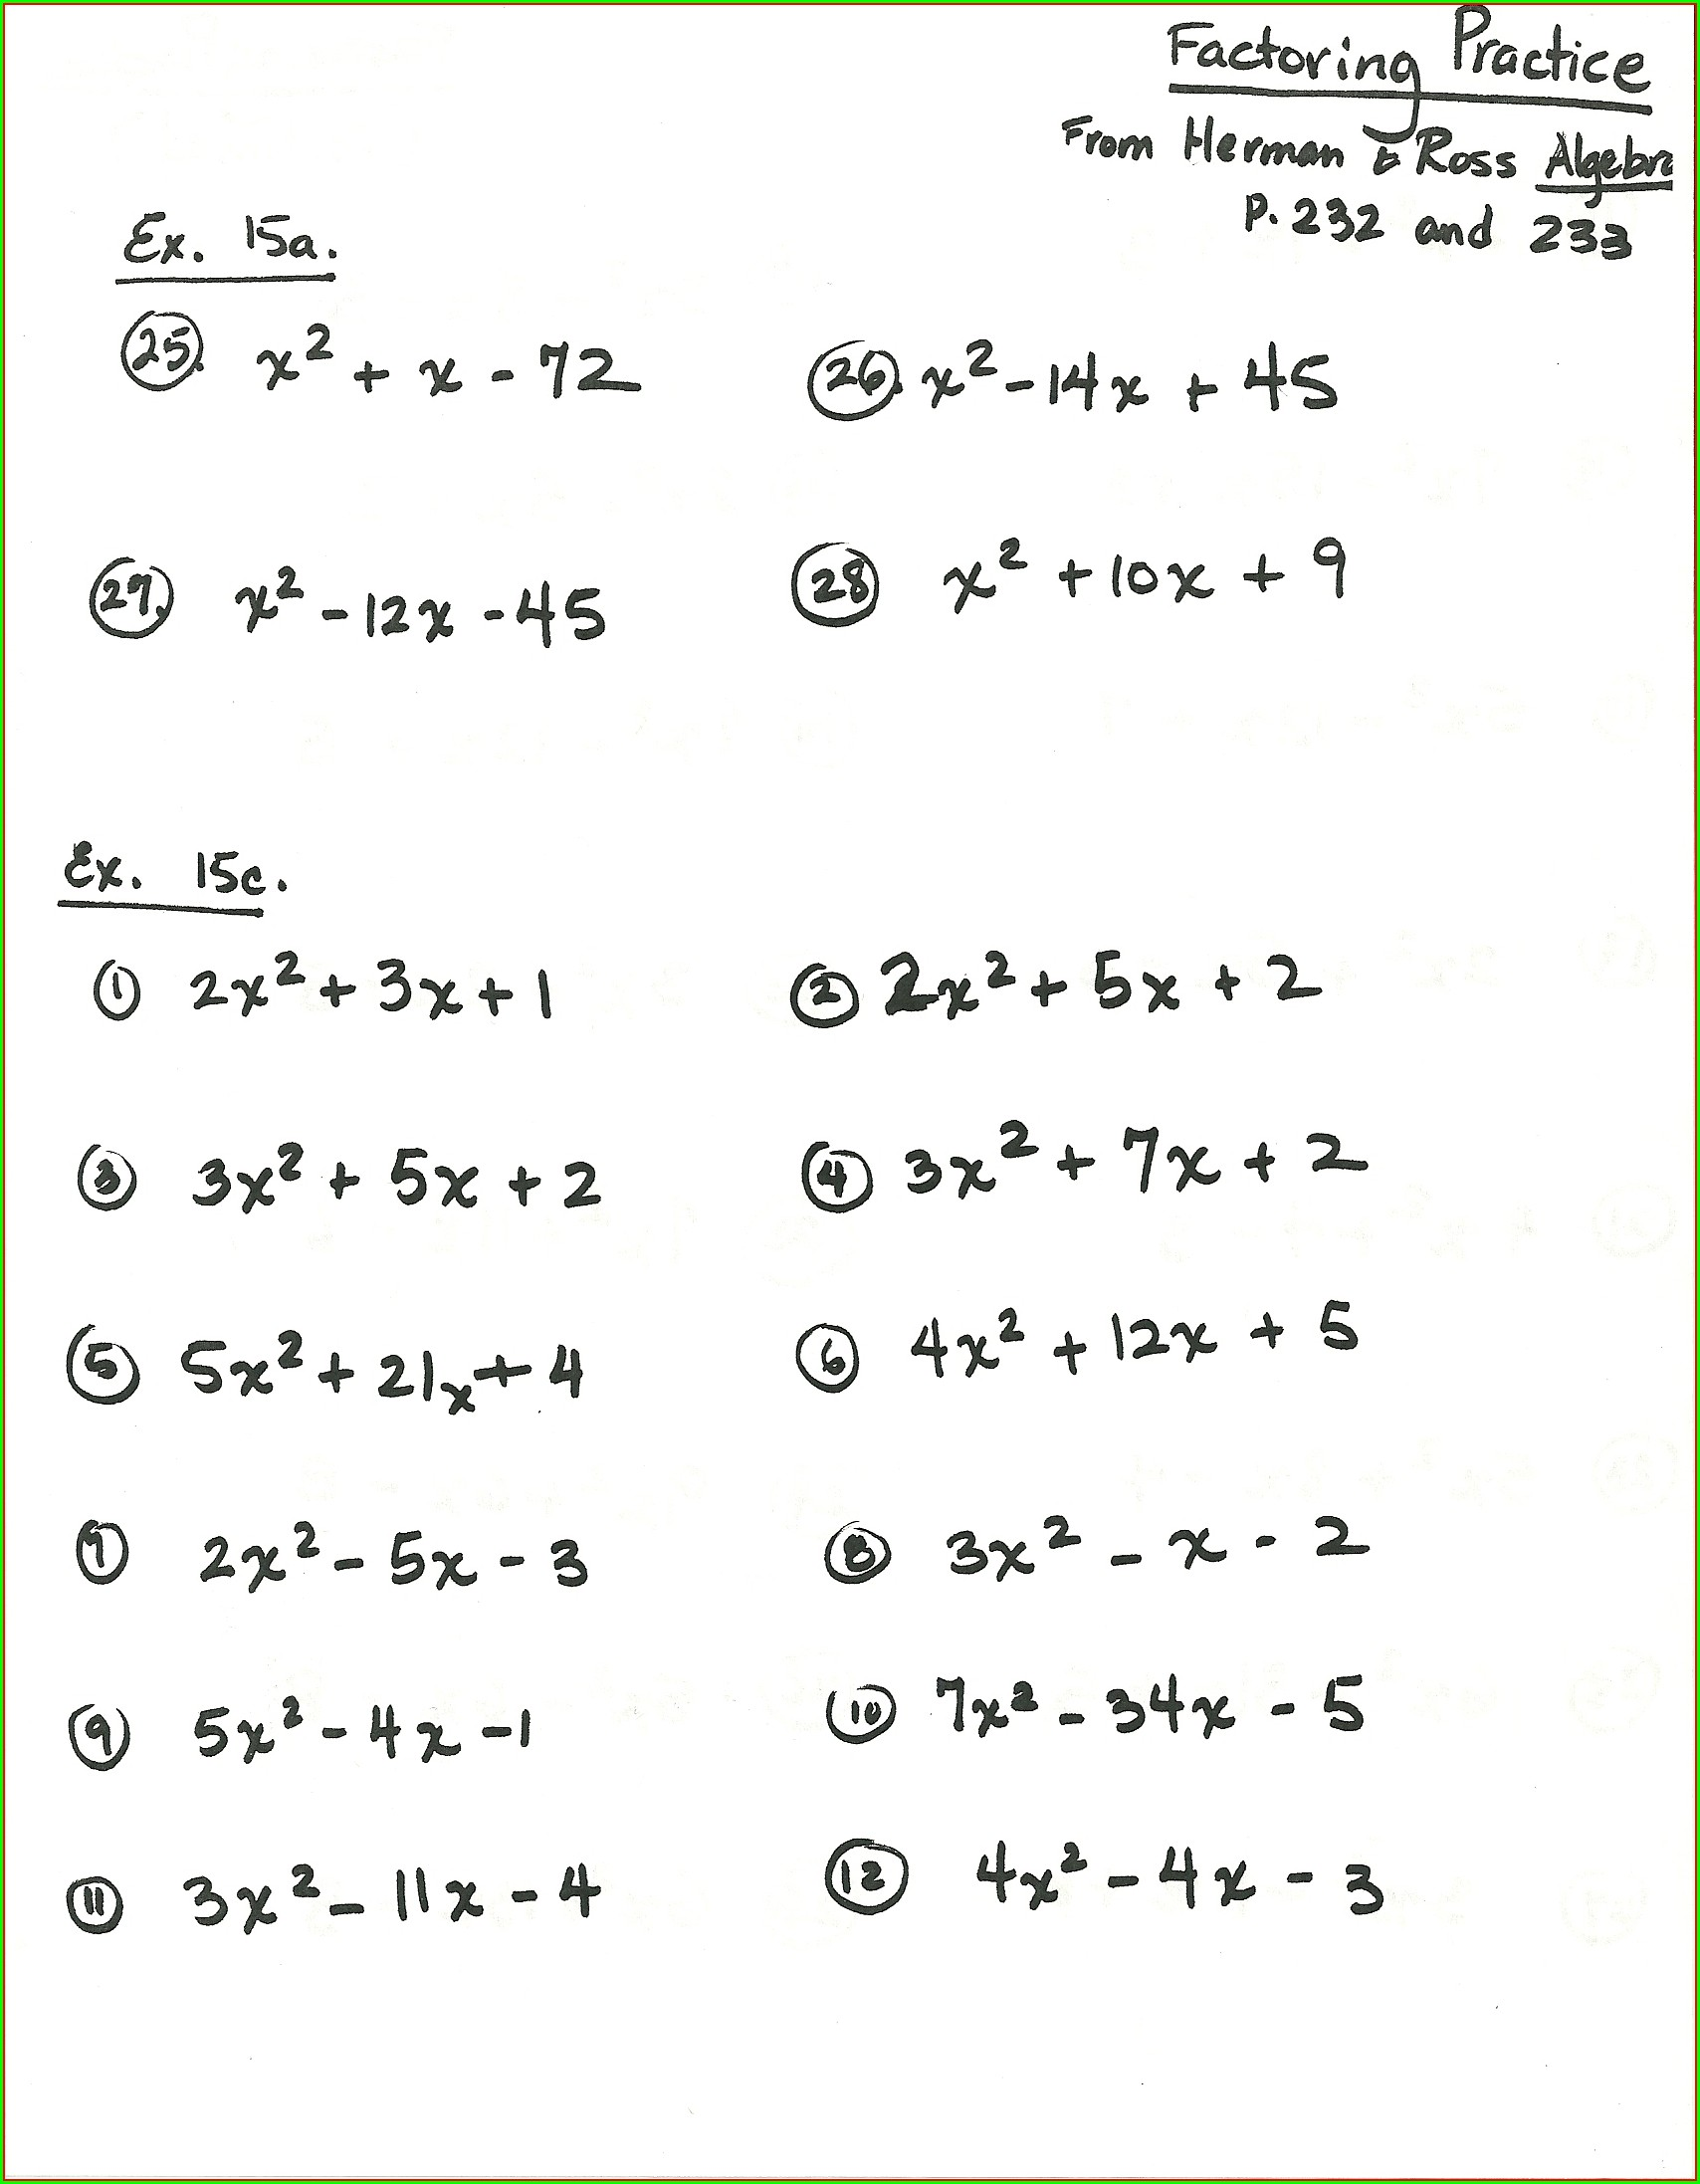 7th Grade Factoring Algebraic Expressions Worksheet